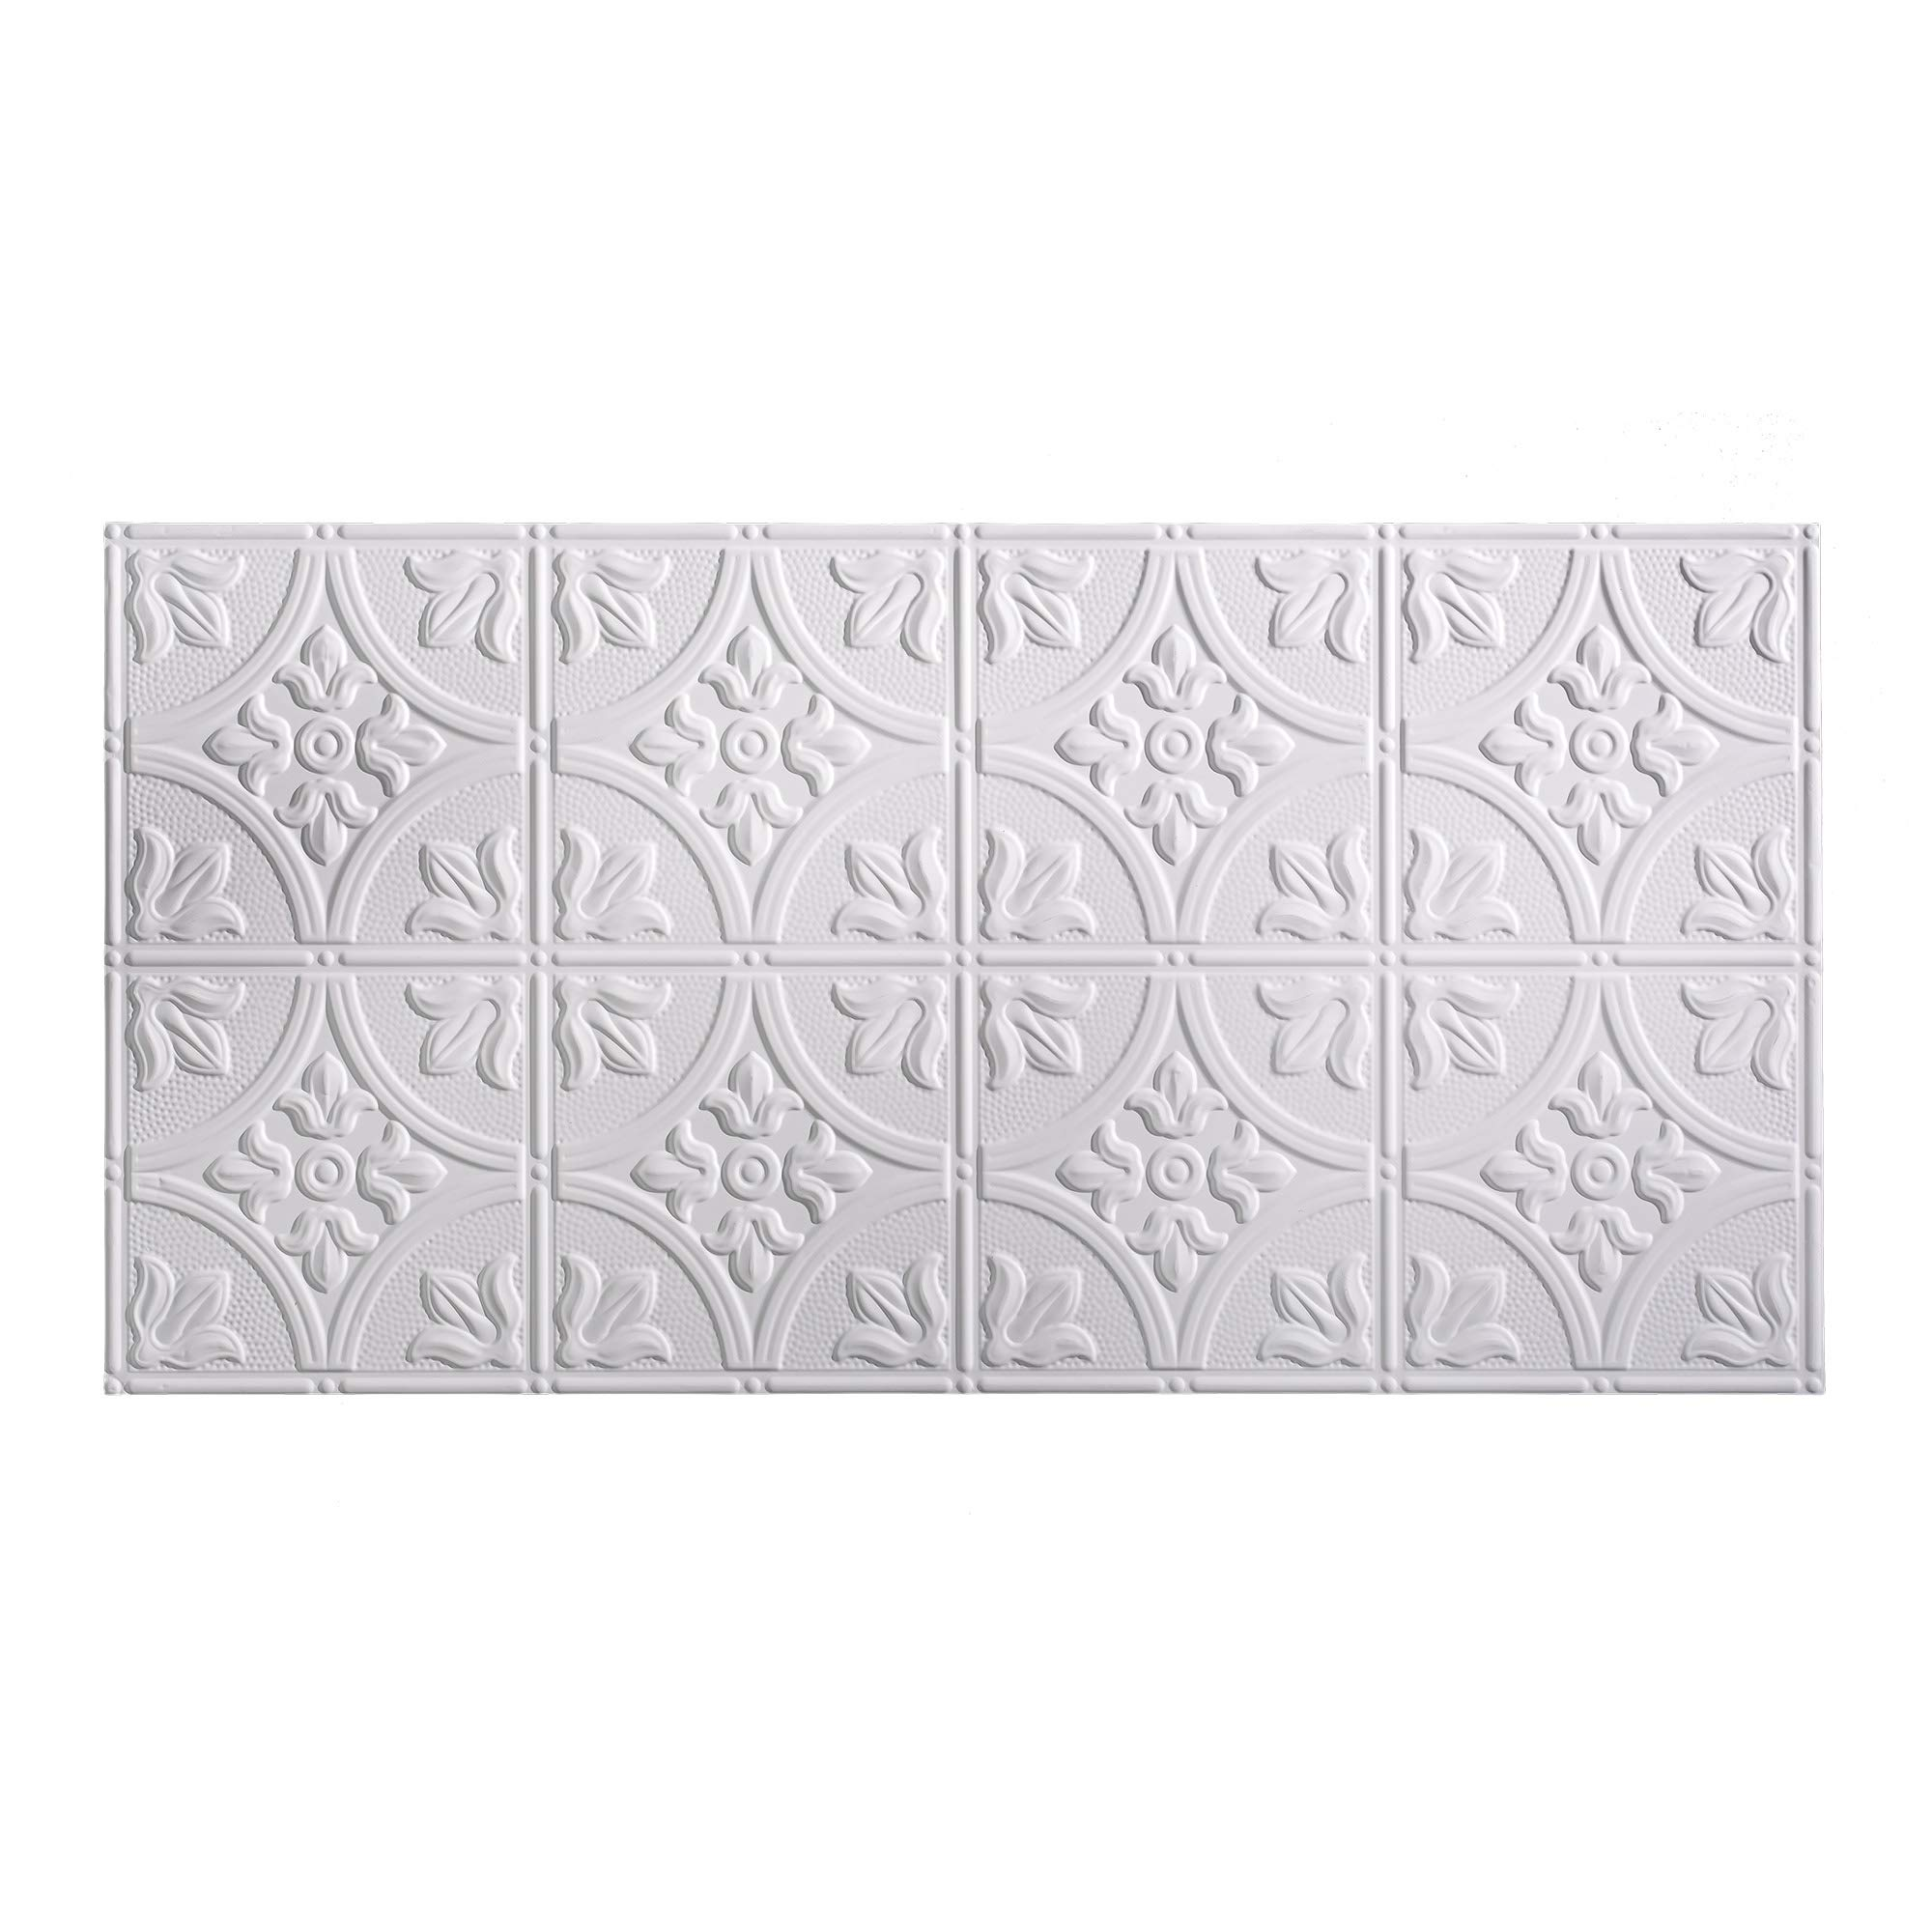 Fasade Easy Installation Traditional 2 Matte White Glue Up Ceiling Tile / Ceiling Panel (2' x 4' Panel) by FASÄDE